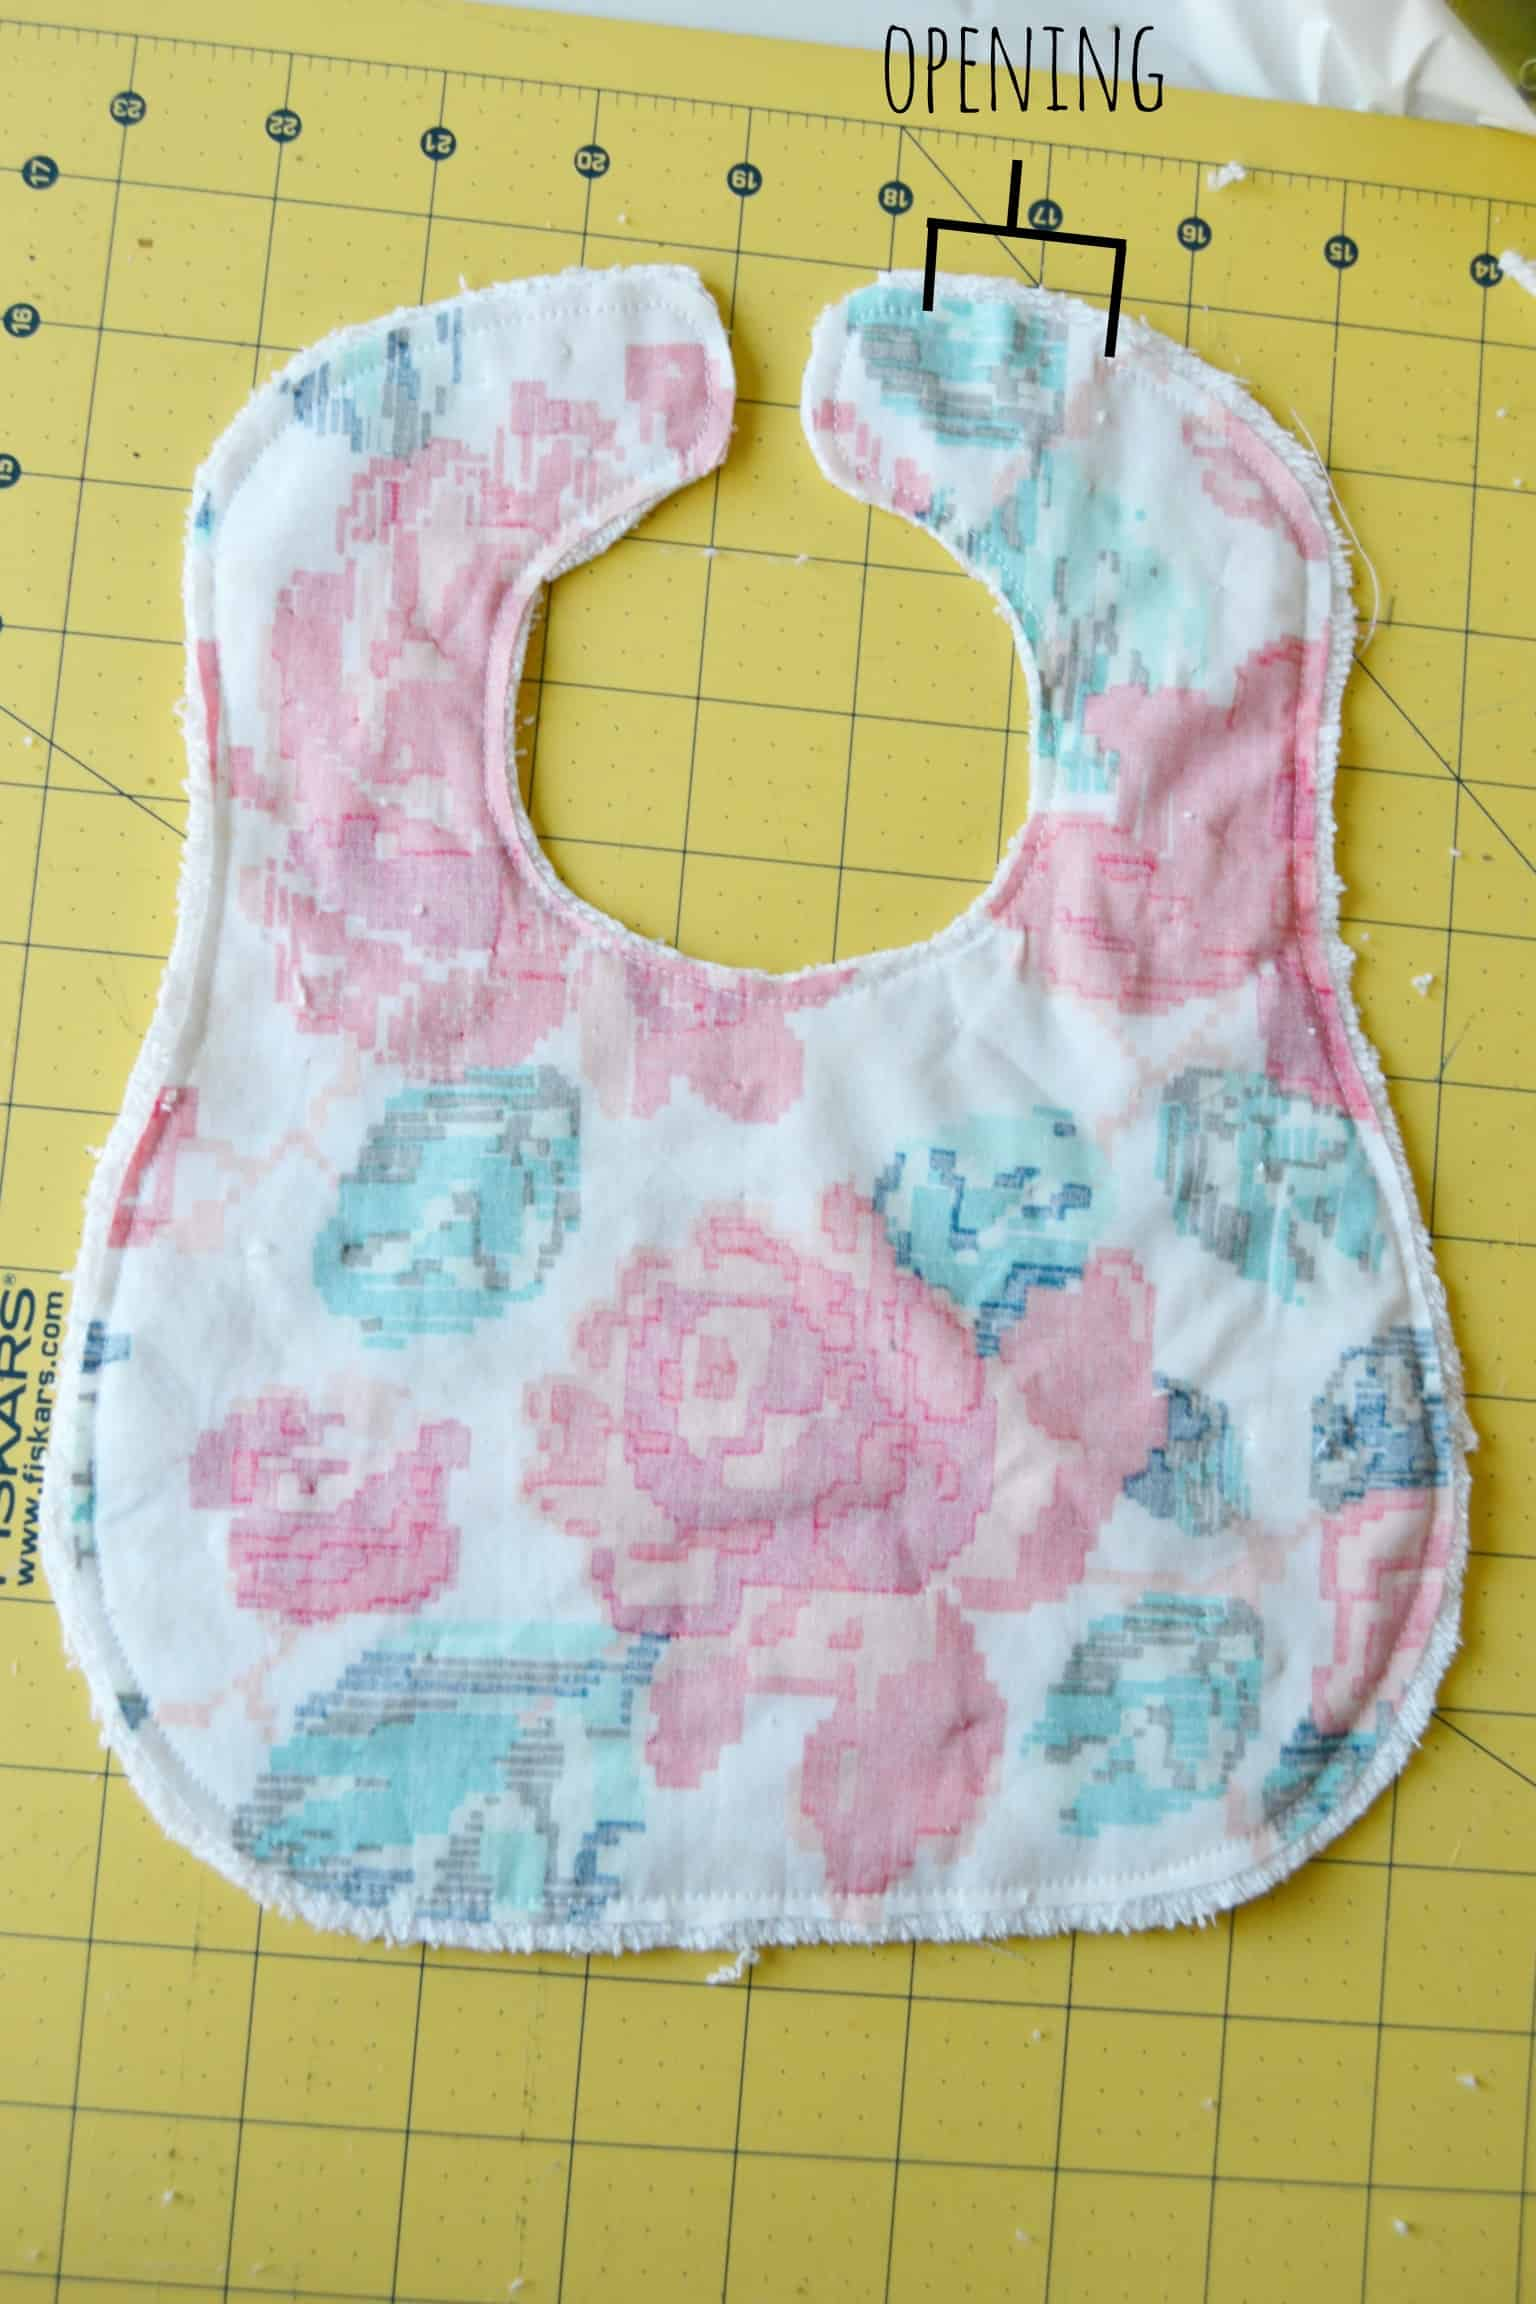 the two pieces of the baby bib sewn together with writing showing where the opening was left unsewn